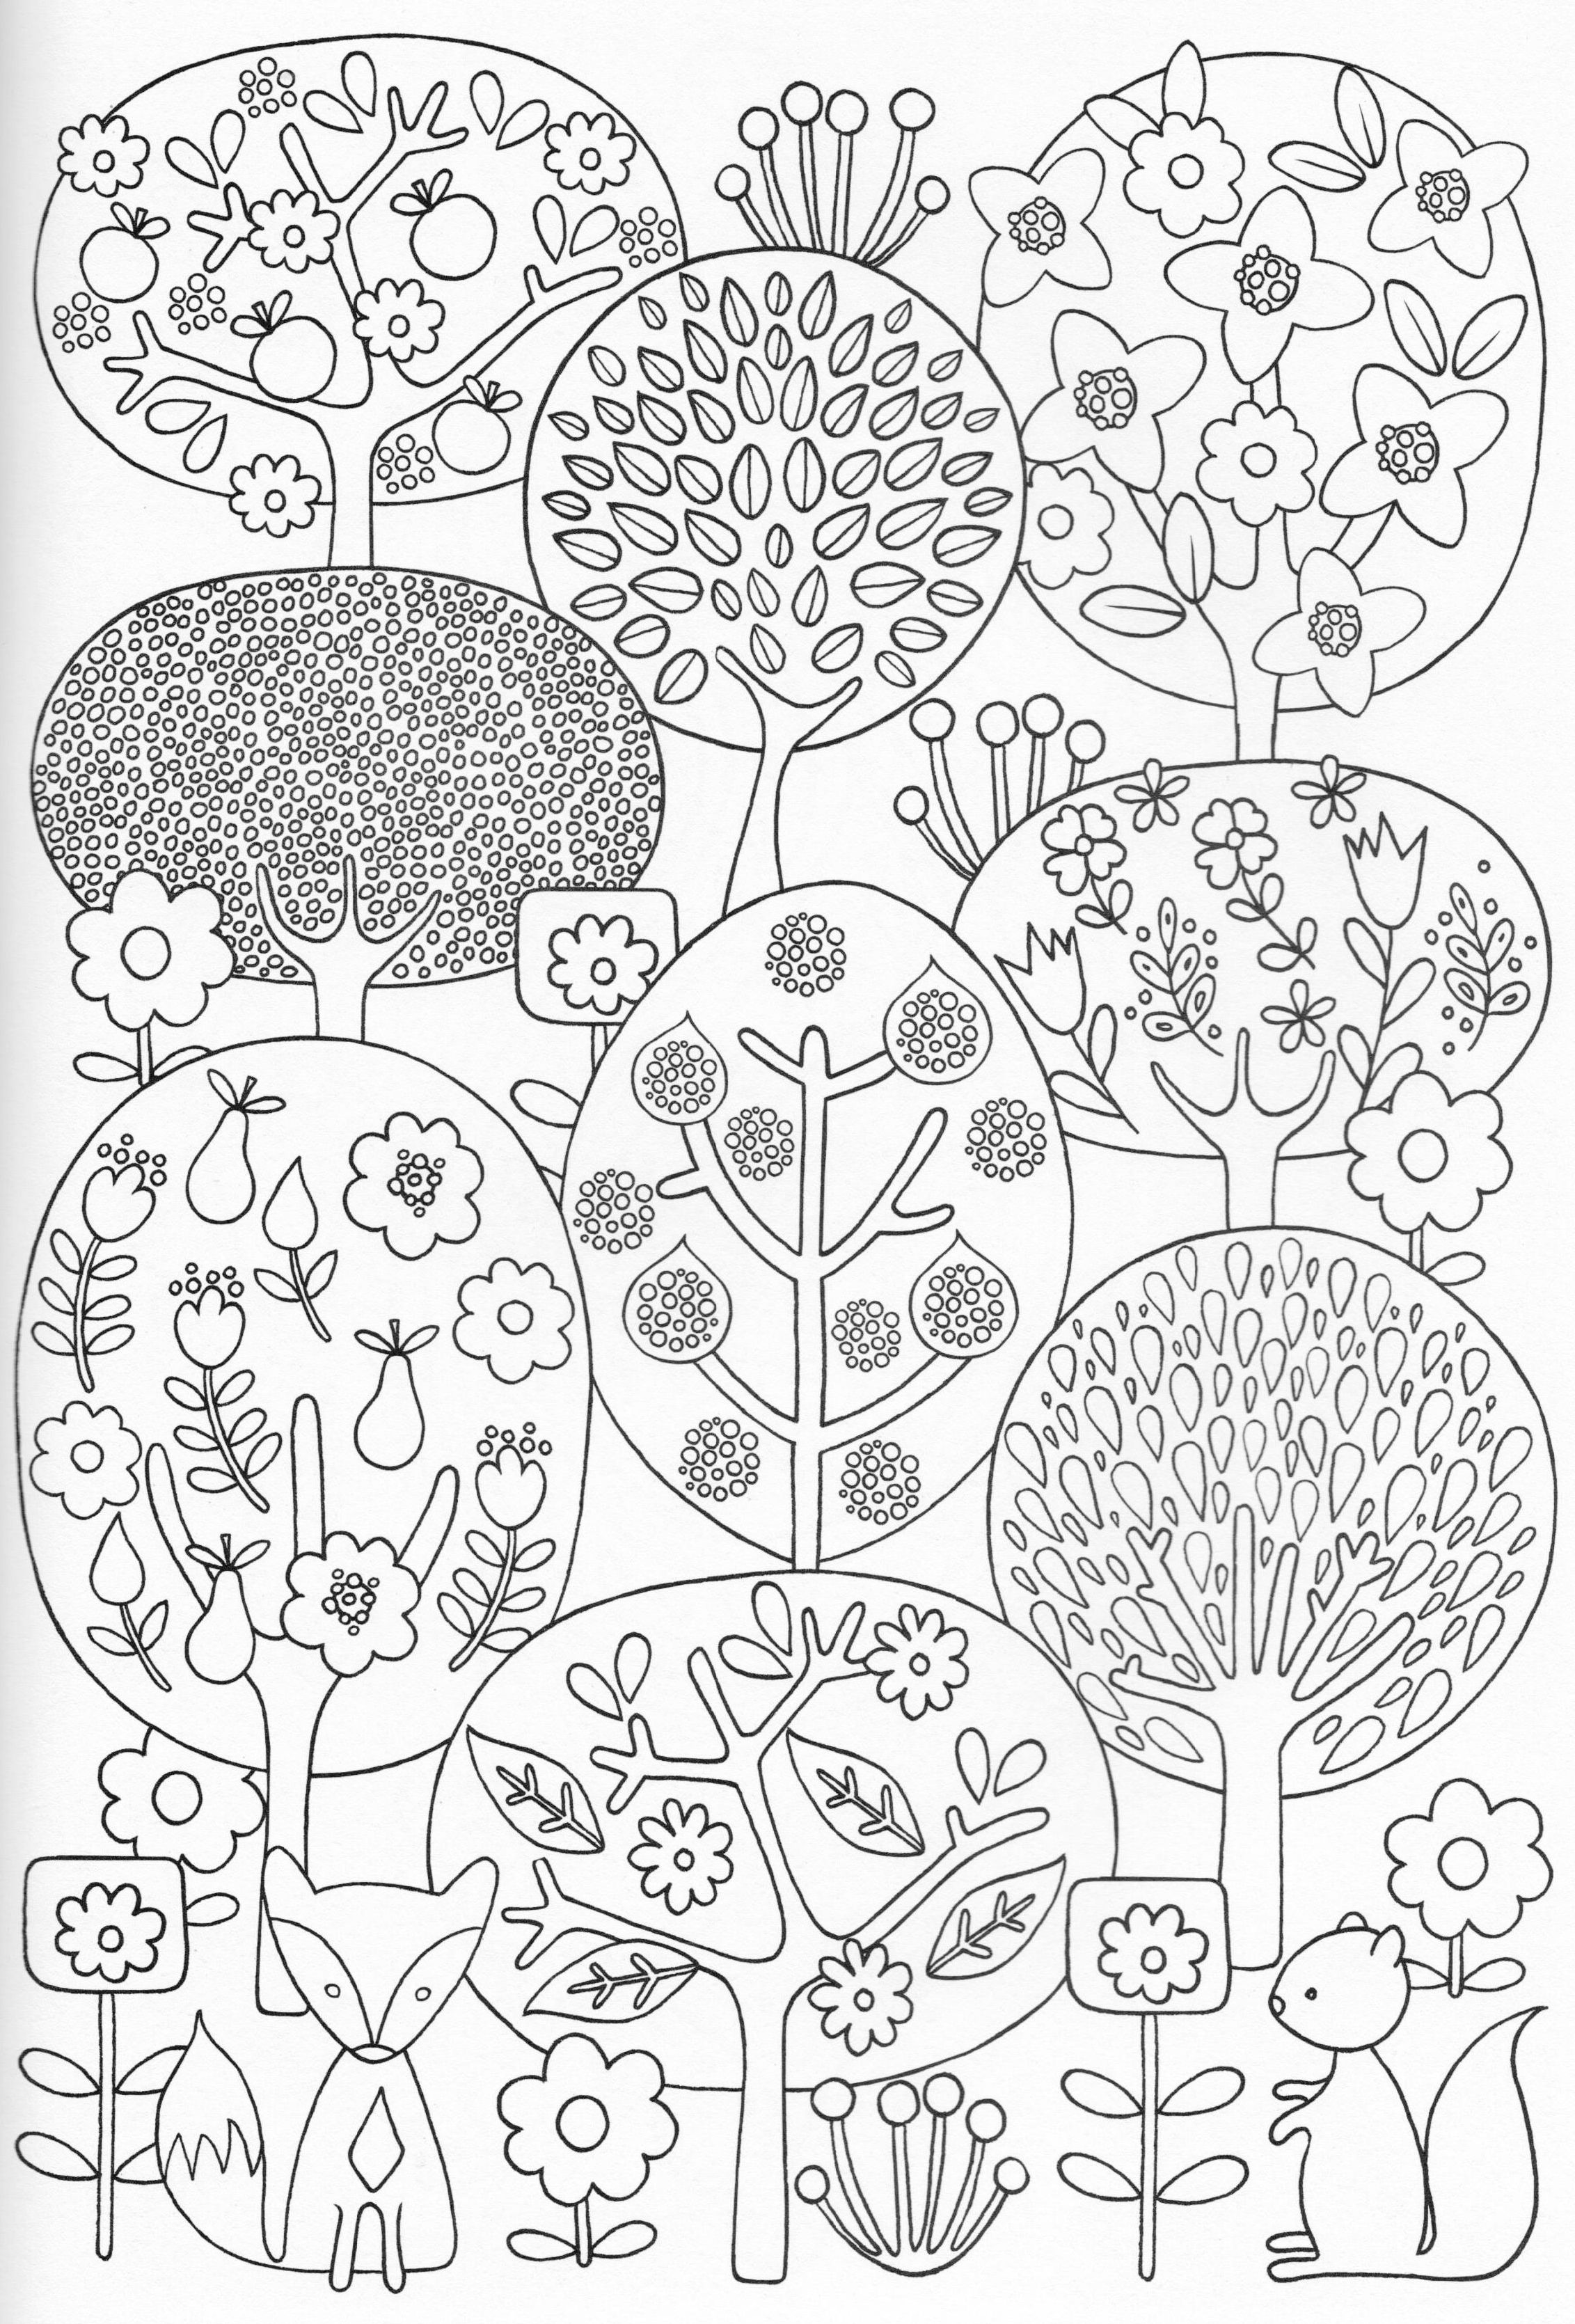 Flower drawings on pinterest dover publications coloring pages and - Scandinavian Coloring Book Pg 28 Features Fox Squirrel Fruit And Flowering Trees